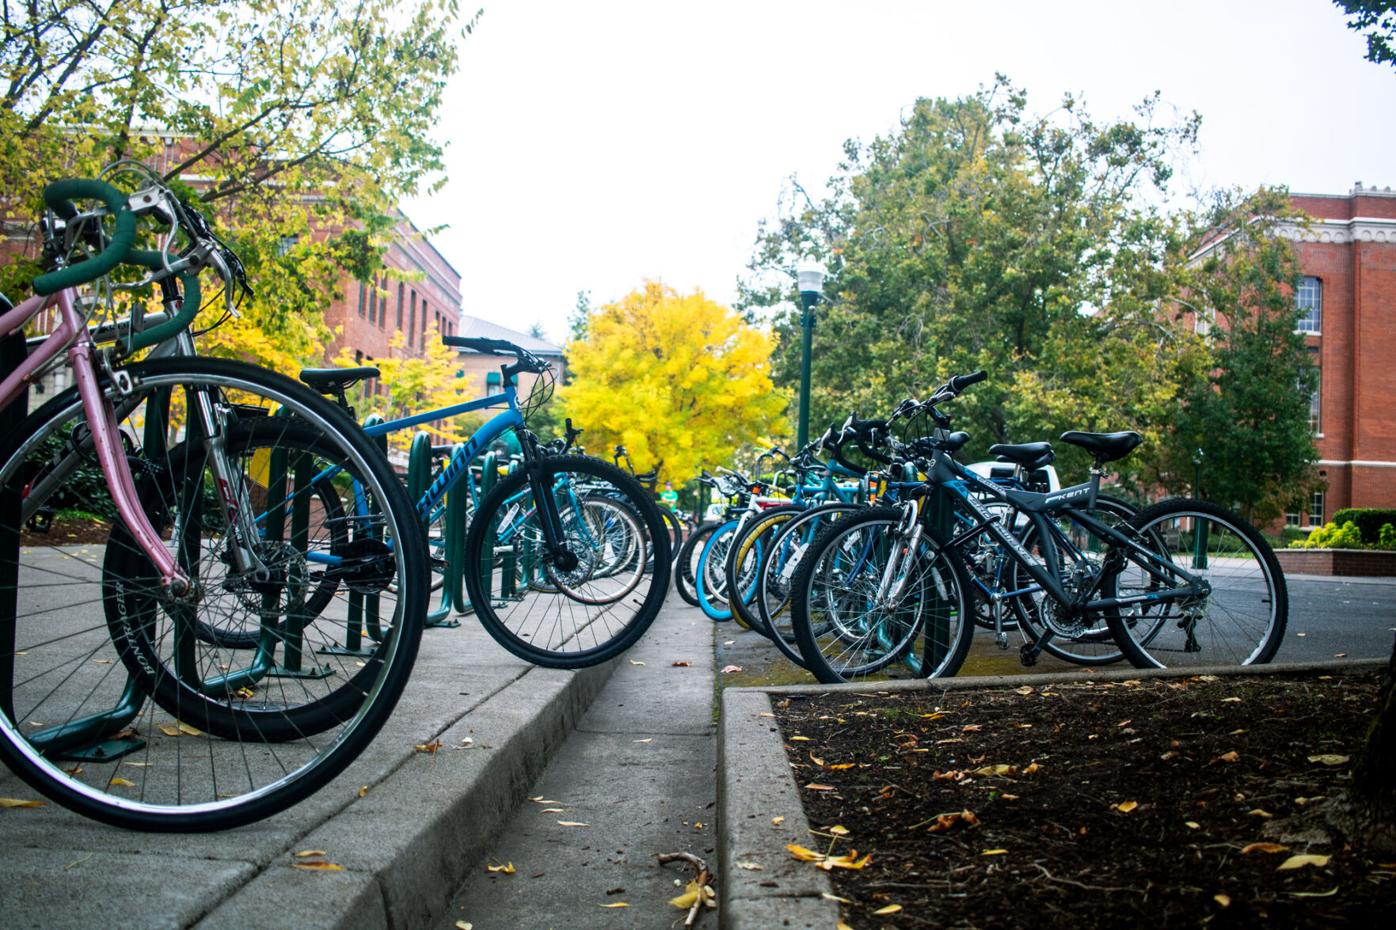 Bike theft on campus: Advice to make sure your bike is safe